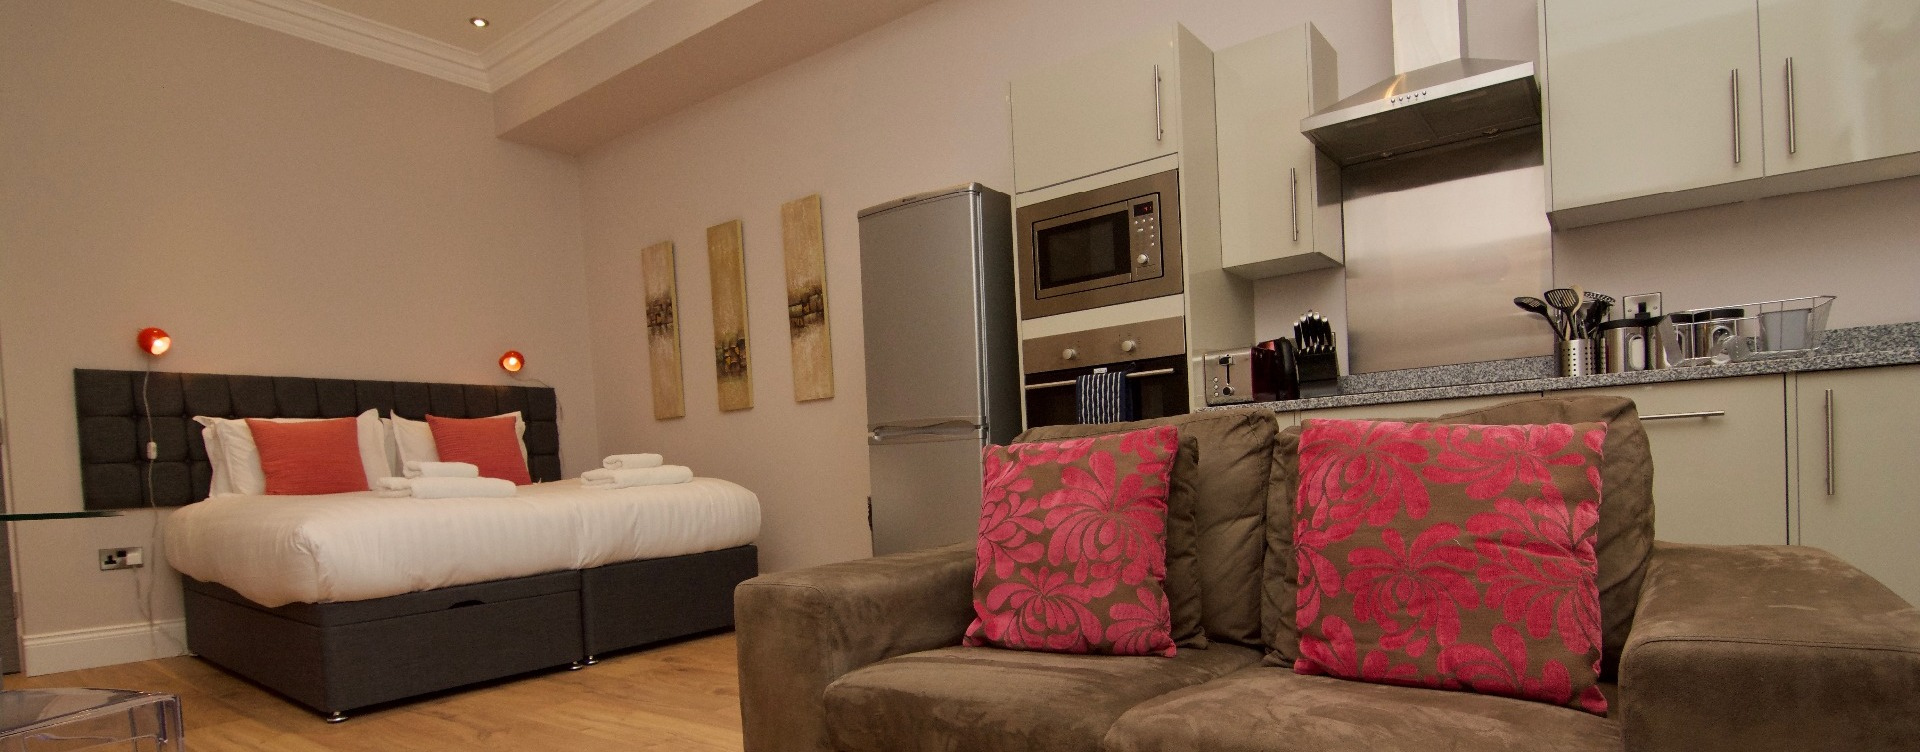 Harrogate Lifestyle Offers Stylish Studio One Bathroom Apartment For 1 Or 2  People With Double Or